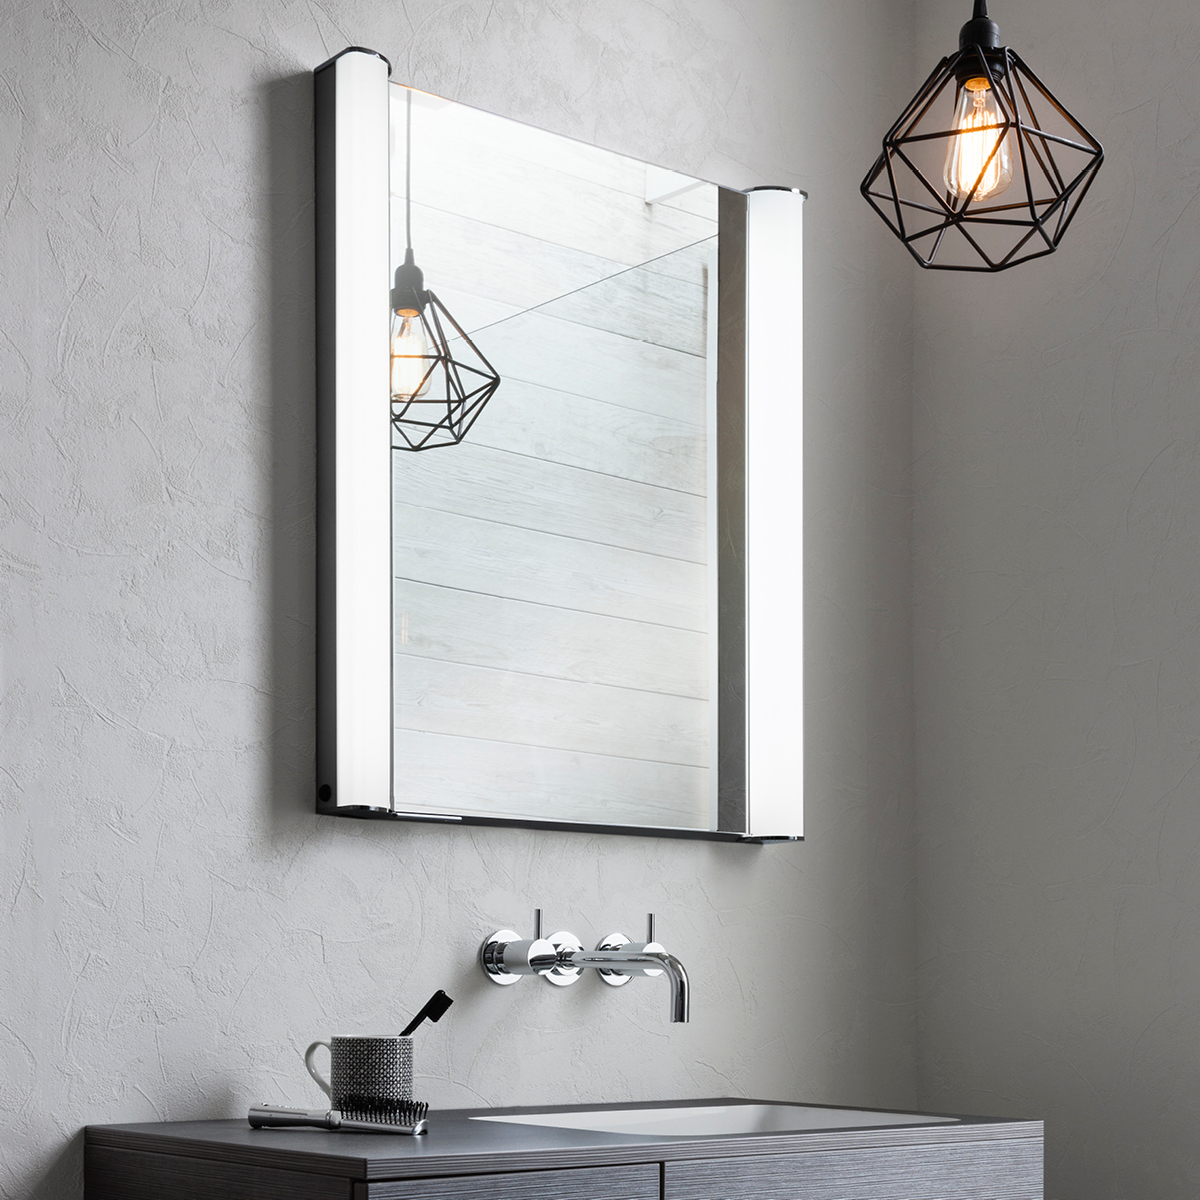 Duo 600mm Illuminated Mirror Cabinet Lavo Bathrooms And Bathroom Accessories In Cape Town